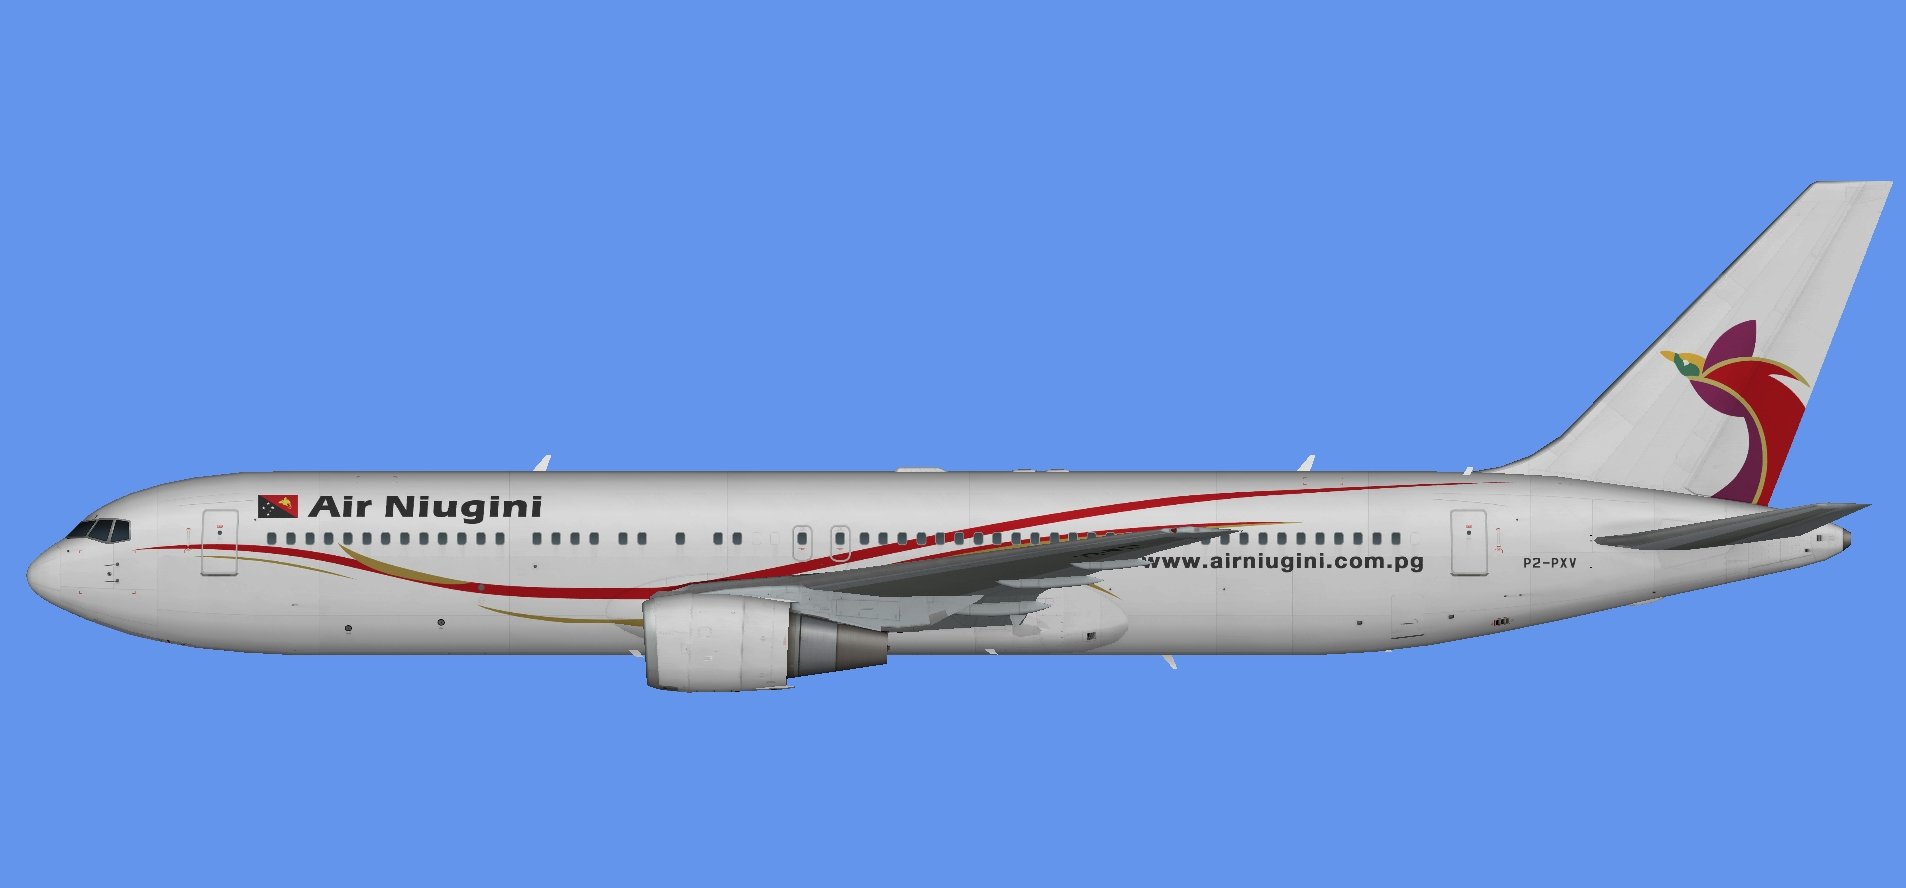 Air Niugini 767-300 GE